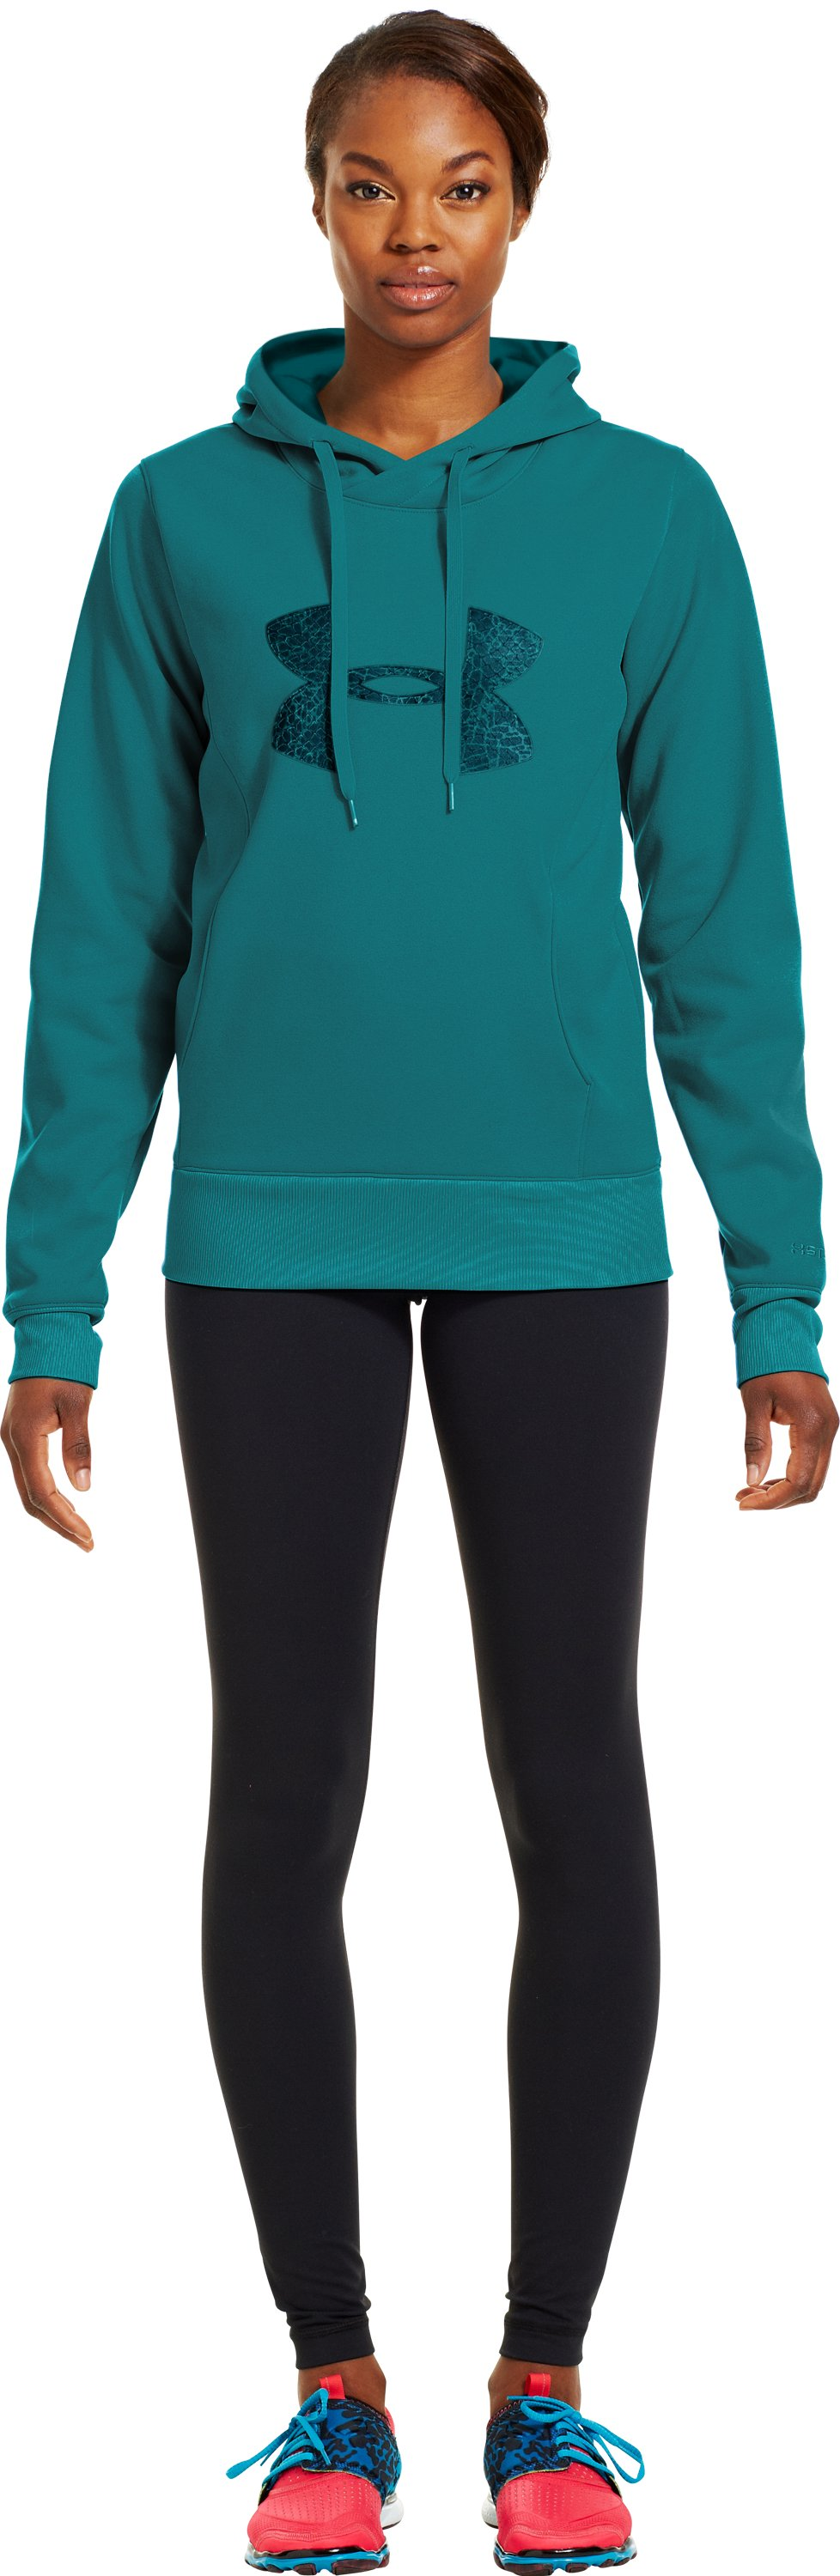 Women's Armour® Fleece Storm Pulse Big Logo Hoodie, CERULEAN